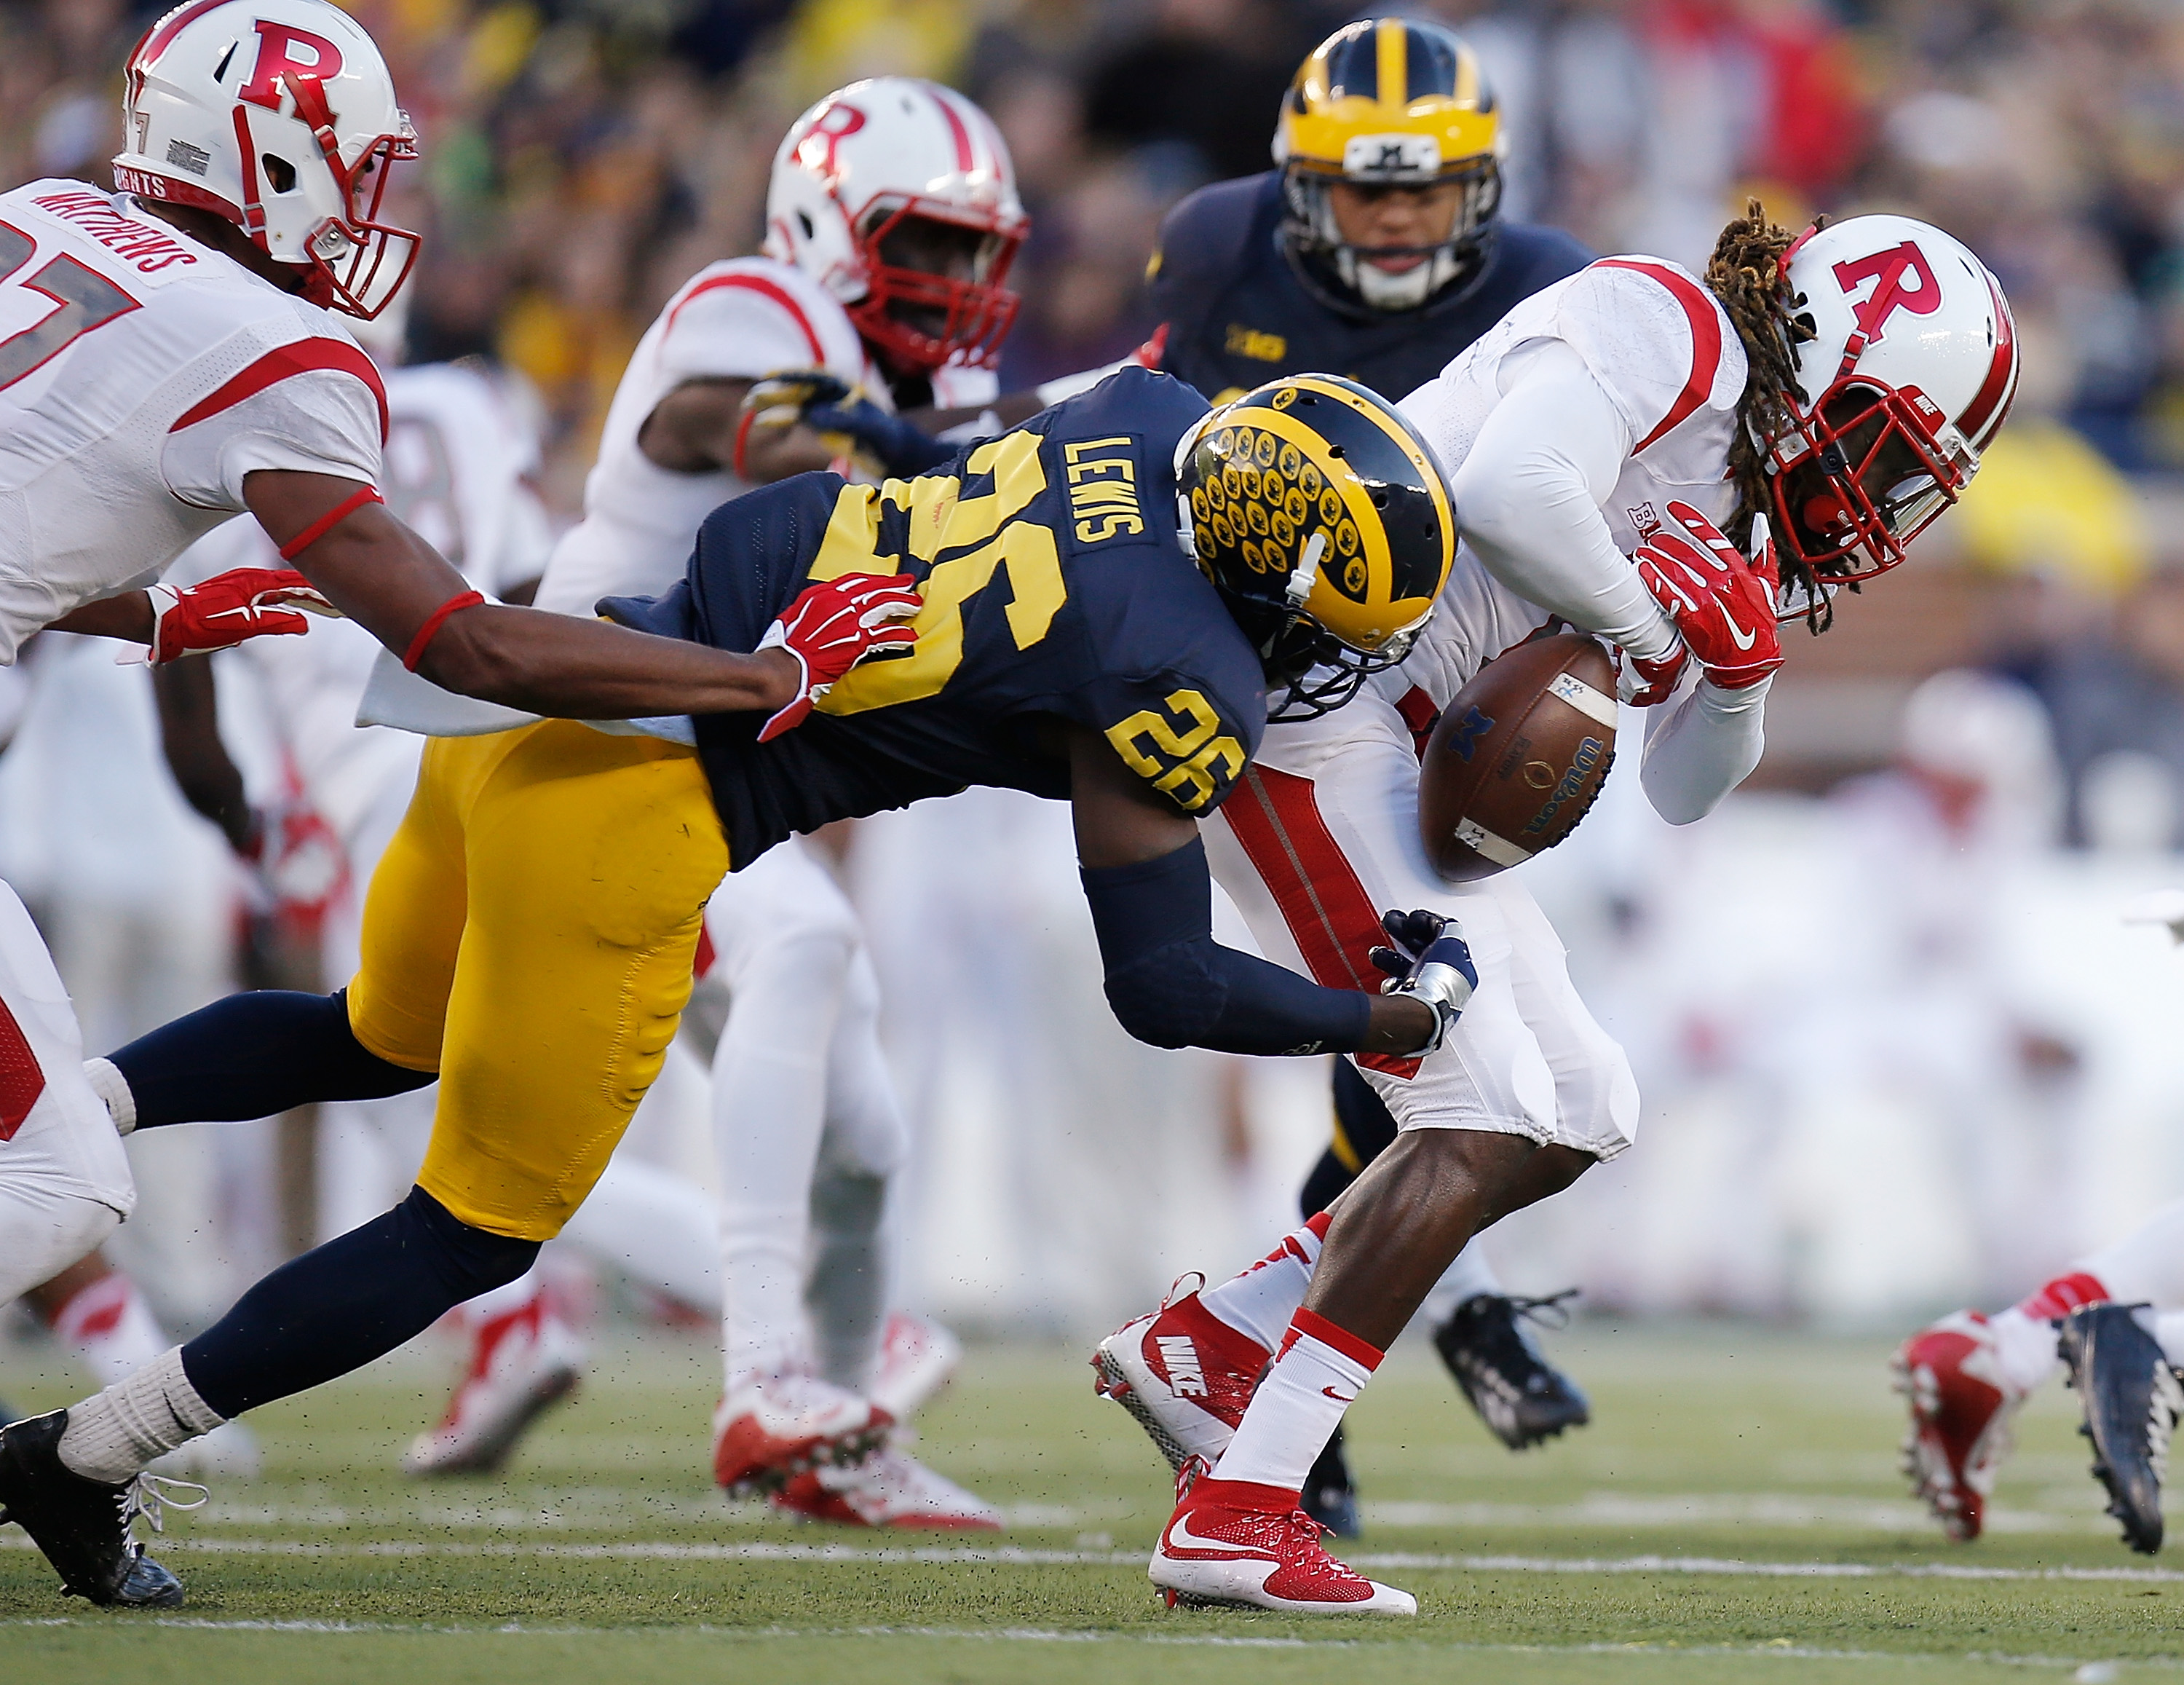 496151446-rutgers-v-michigan.jpg